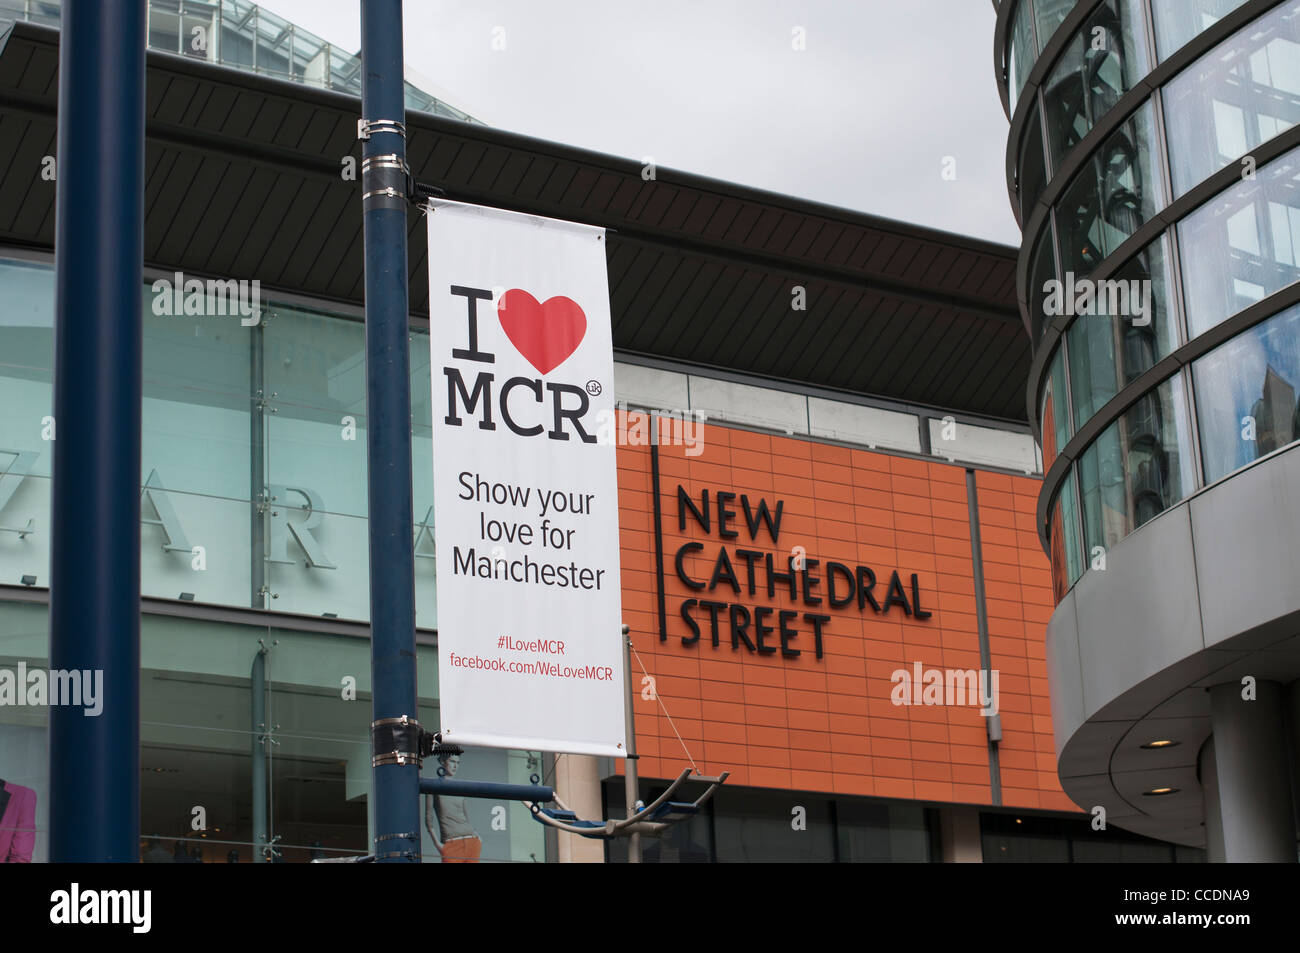 A banner for the I Love Manchester Campaign hung on the corner of New Cathedral Street, Manchester. - Stock Image